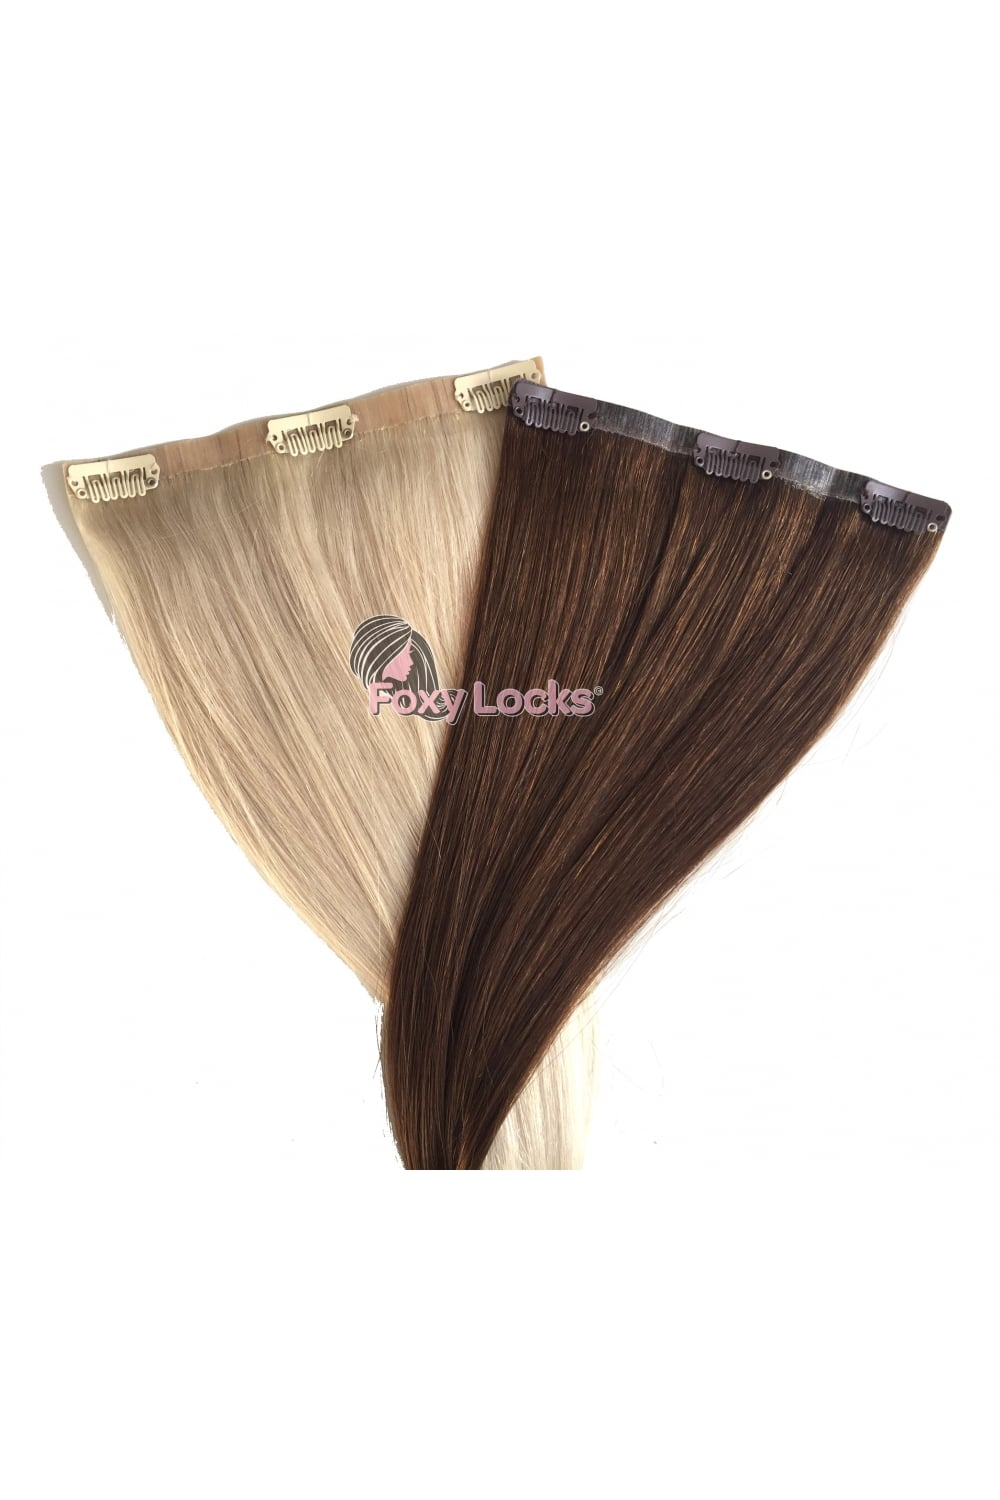 Sunkissed Brown Seamless Deluxe 20 Clip In Human Hair Extensions 165g